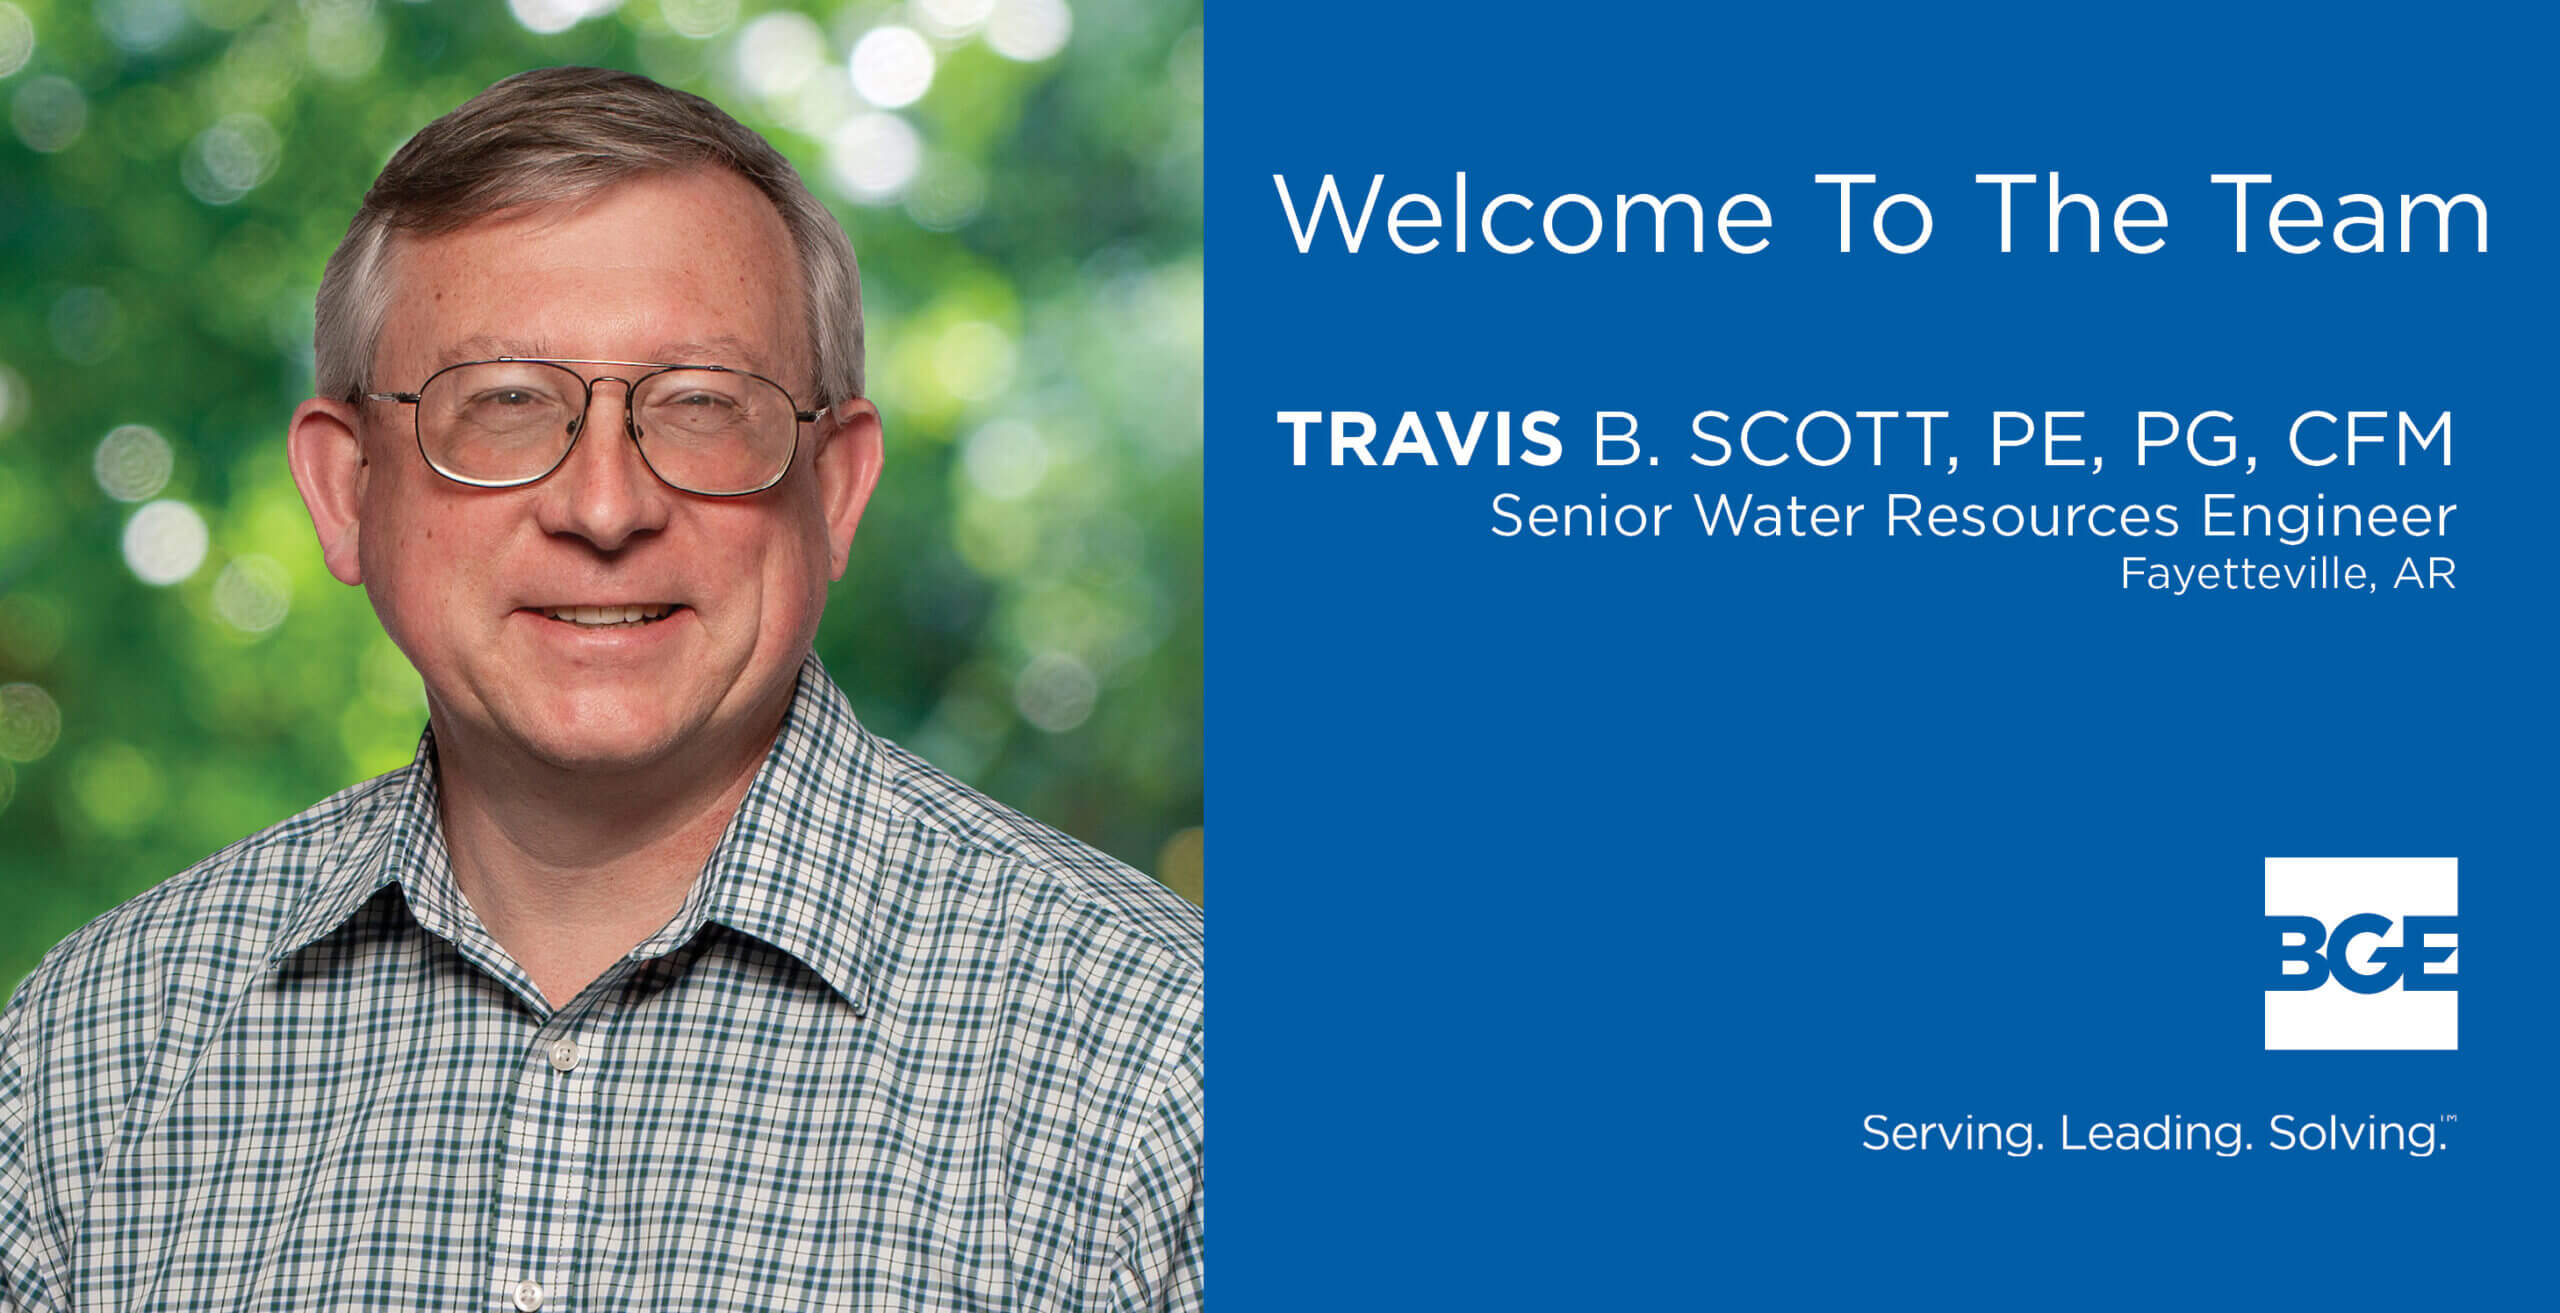 BGE Welcomes Travis Scott as Senior Water Resources Engineer